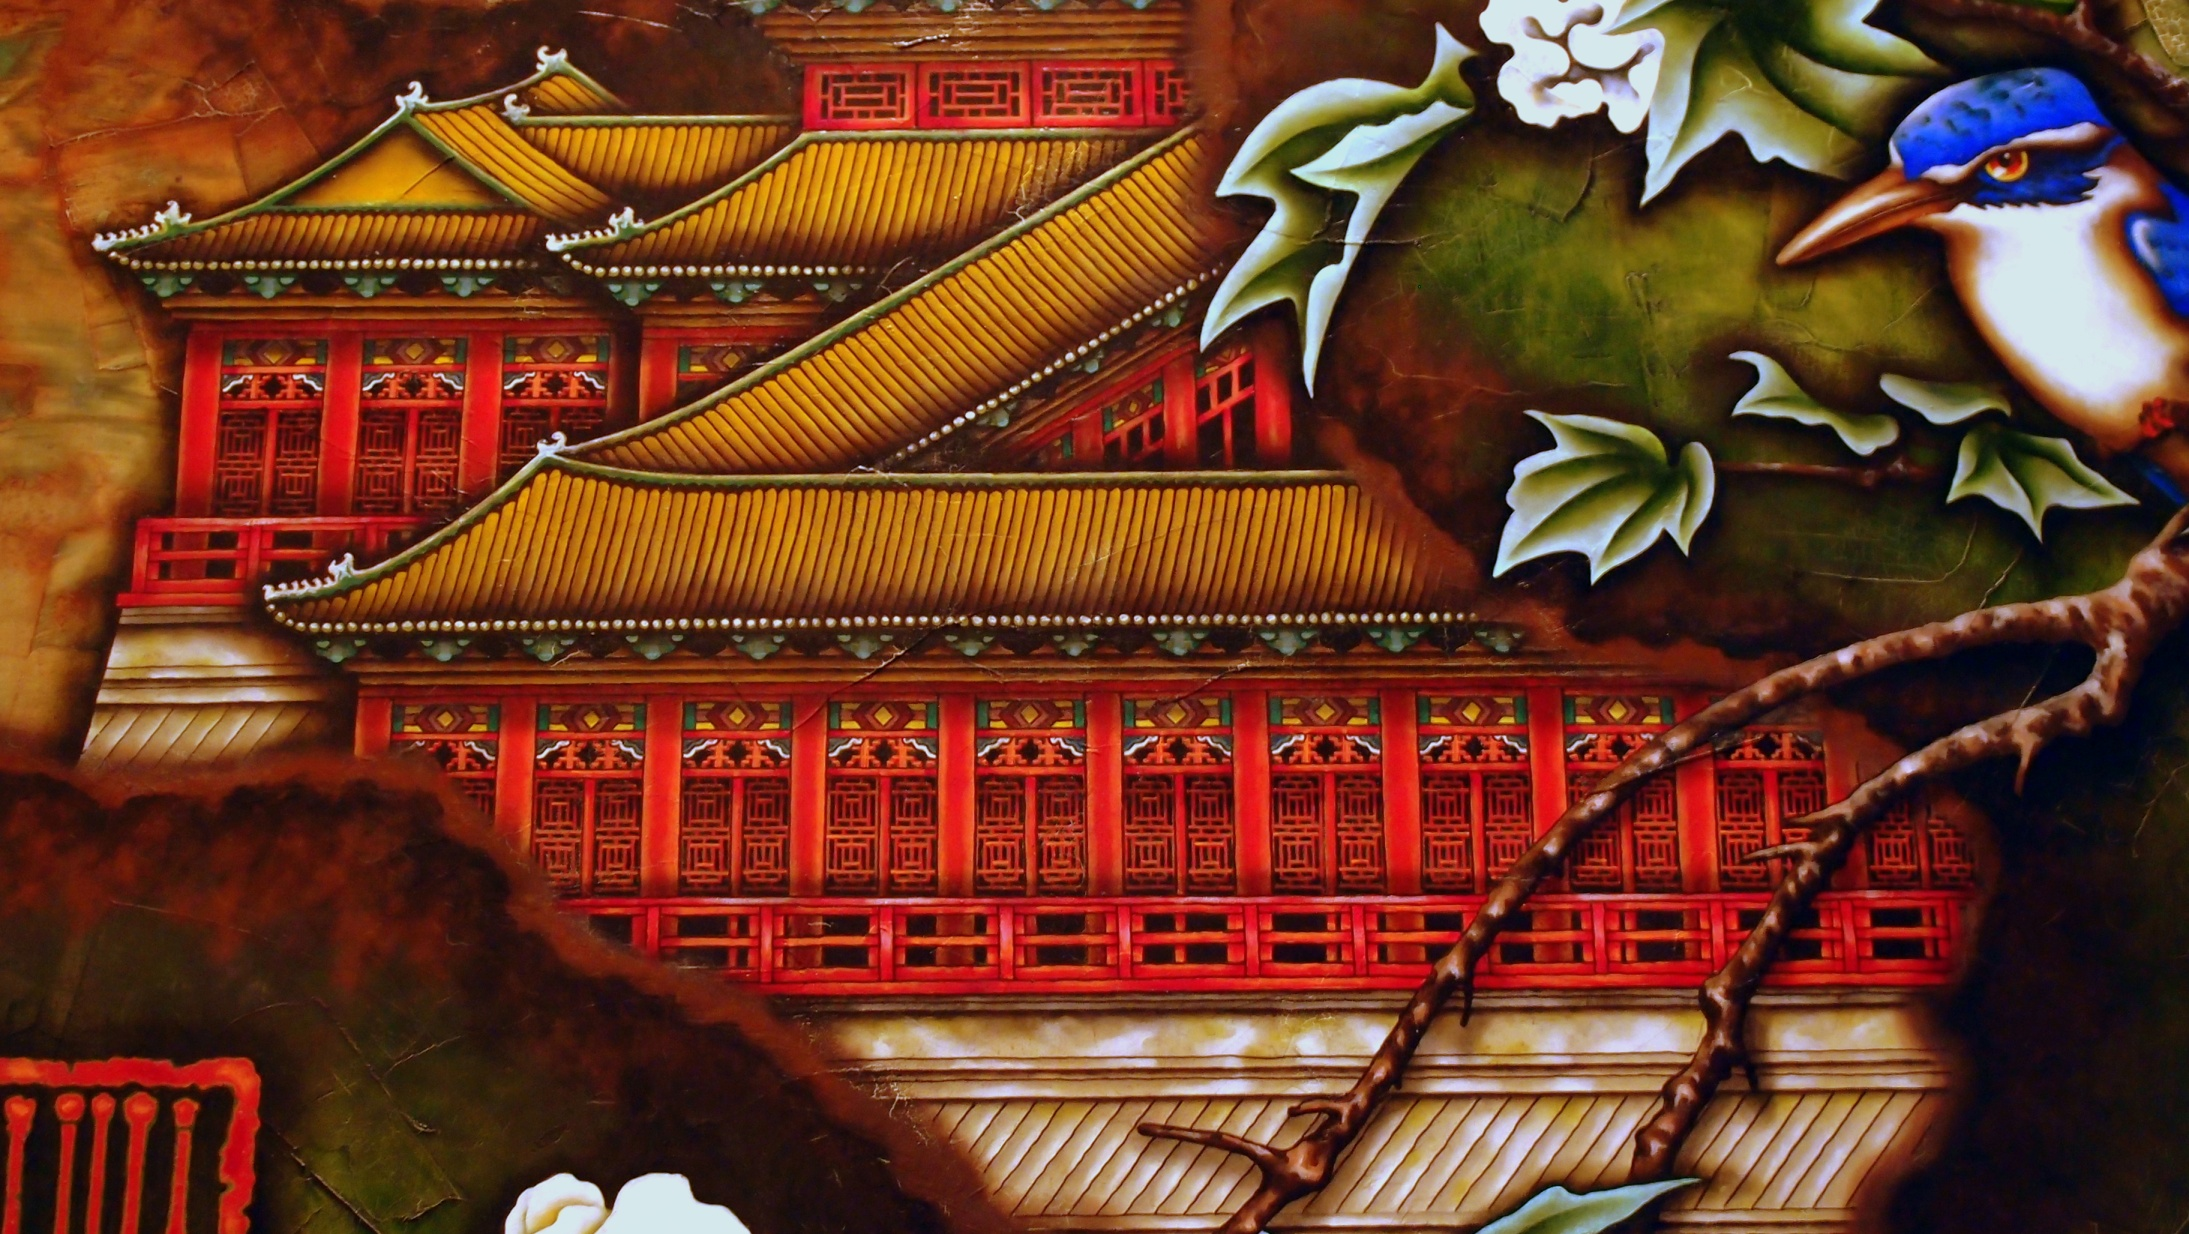 Part of a painting in the Kowloon Shangri - La Hotel lobby